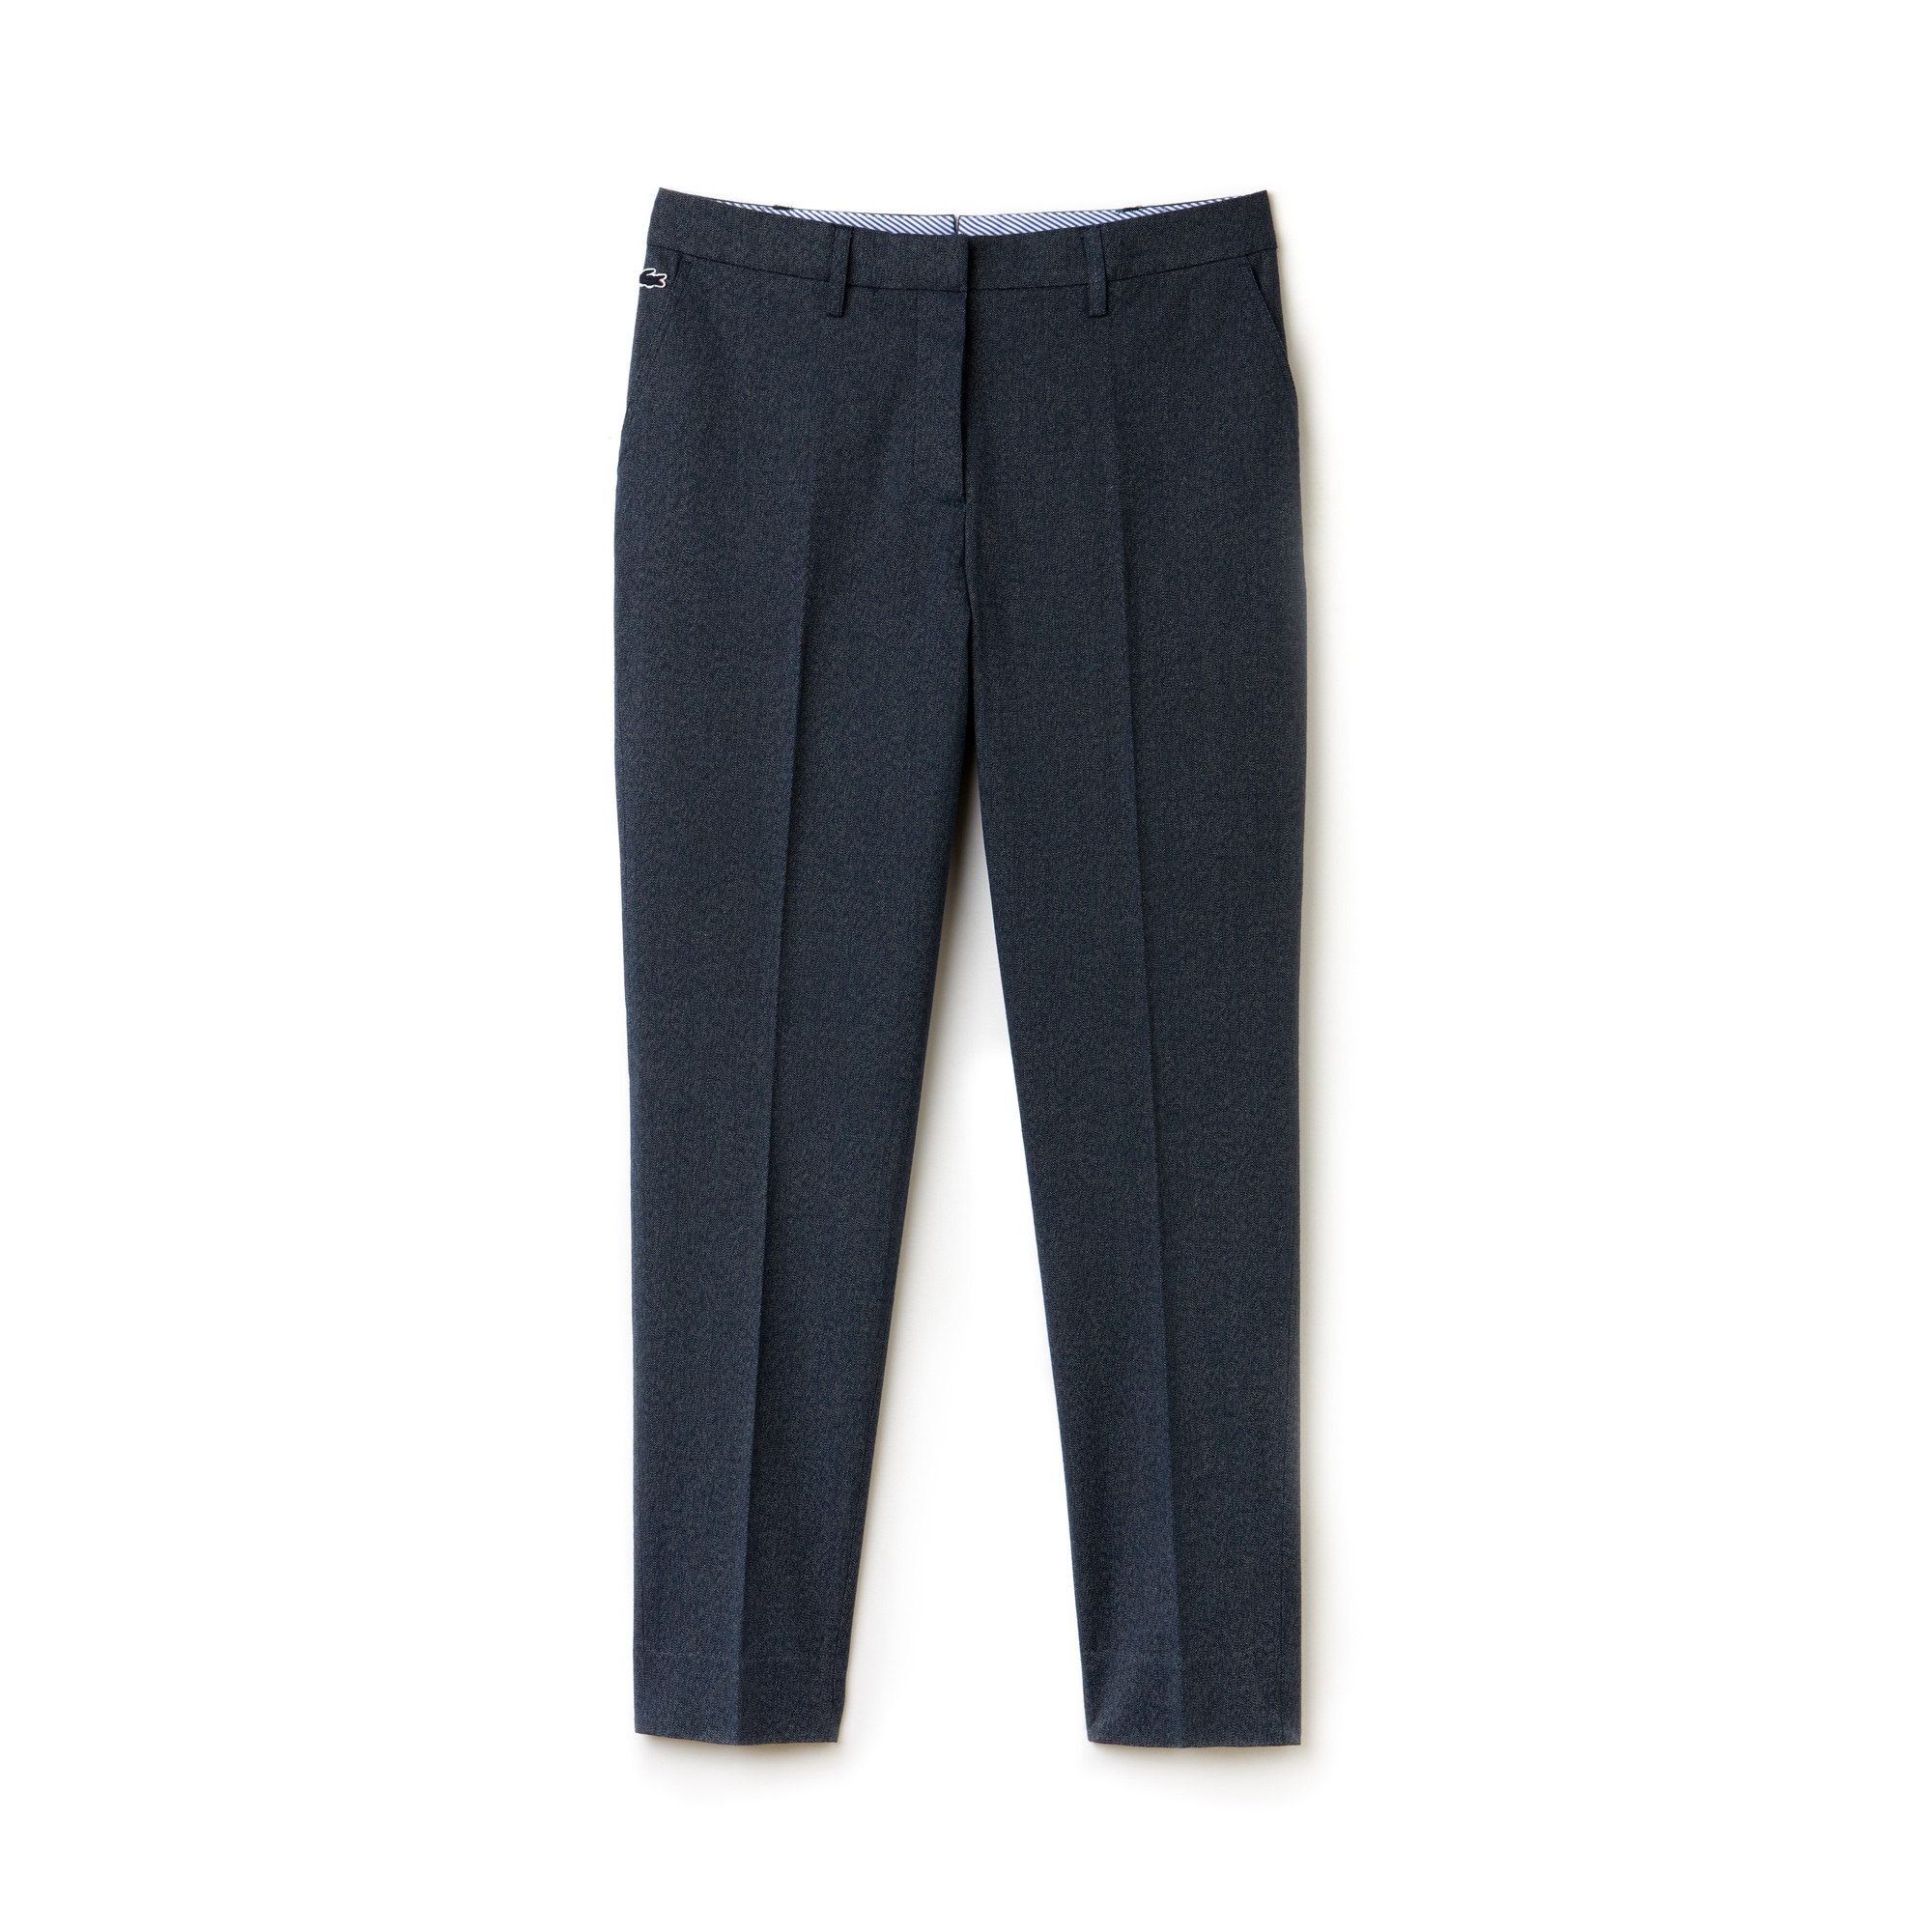 Women's L!VE Twill Cigarette Pants